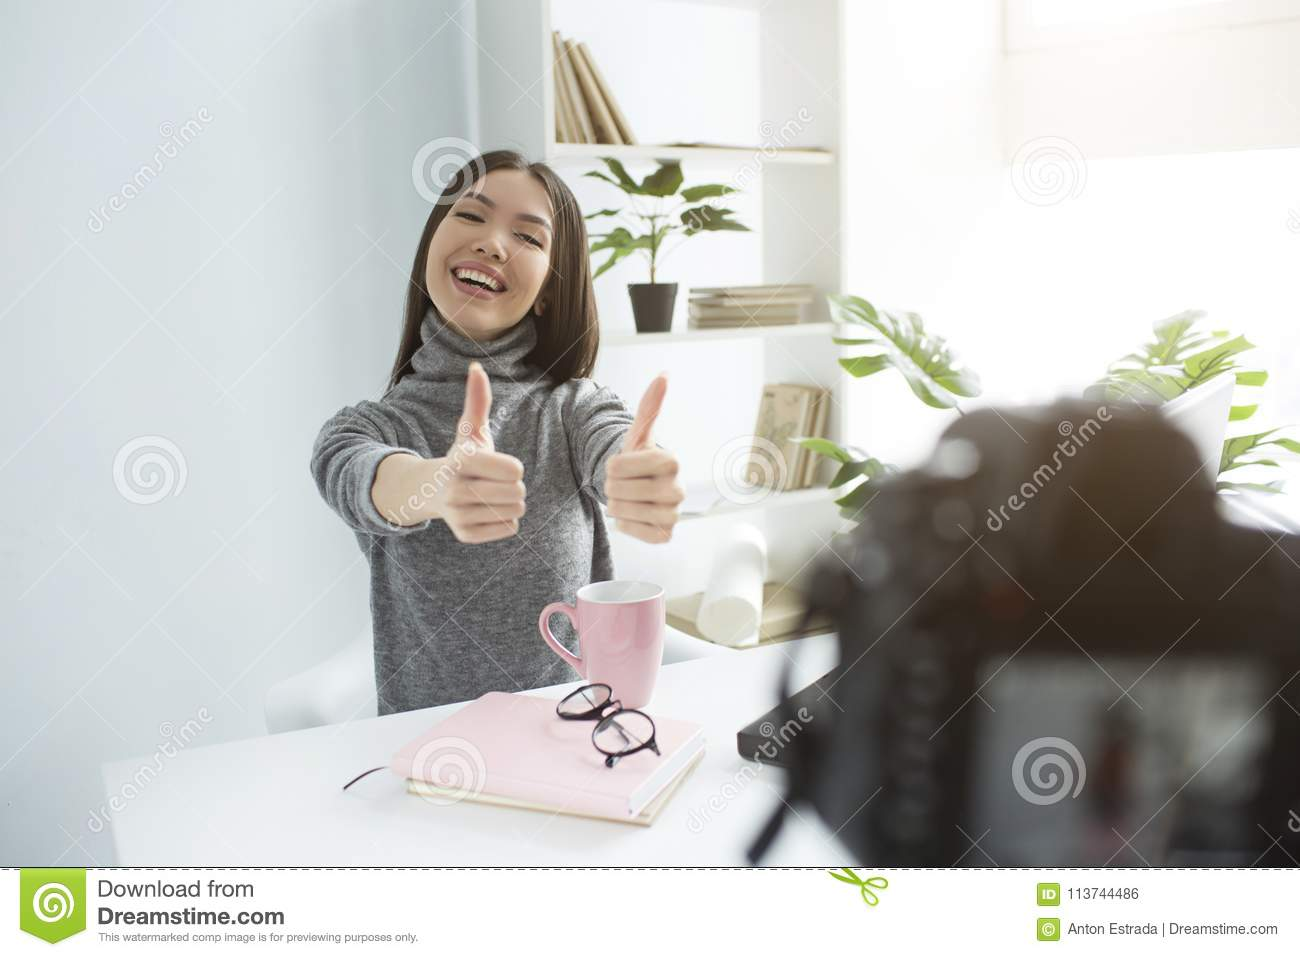 A picture of happy and delightul girl sitting at the table and recording her new vlog. She is showing her big thumbs up